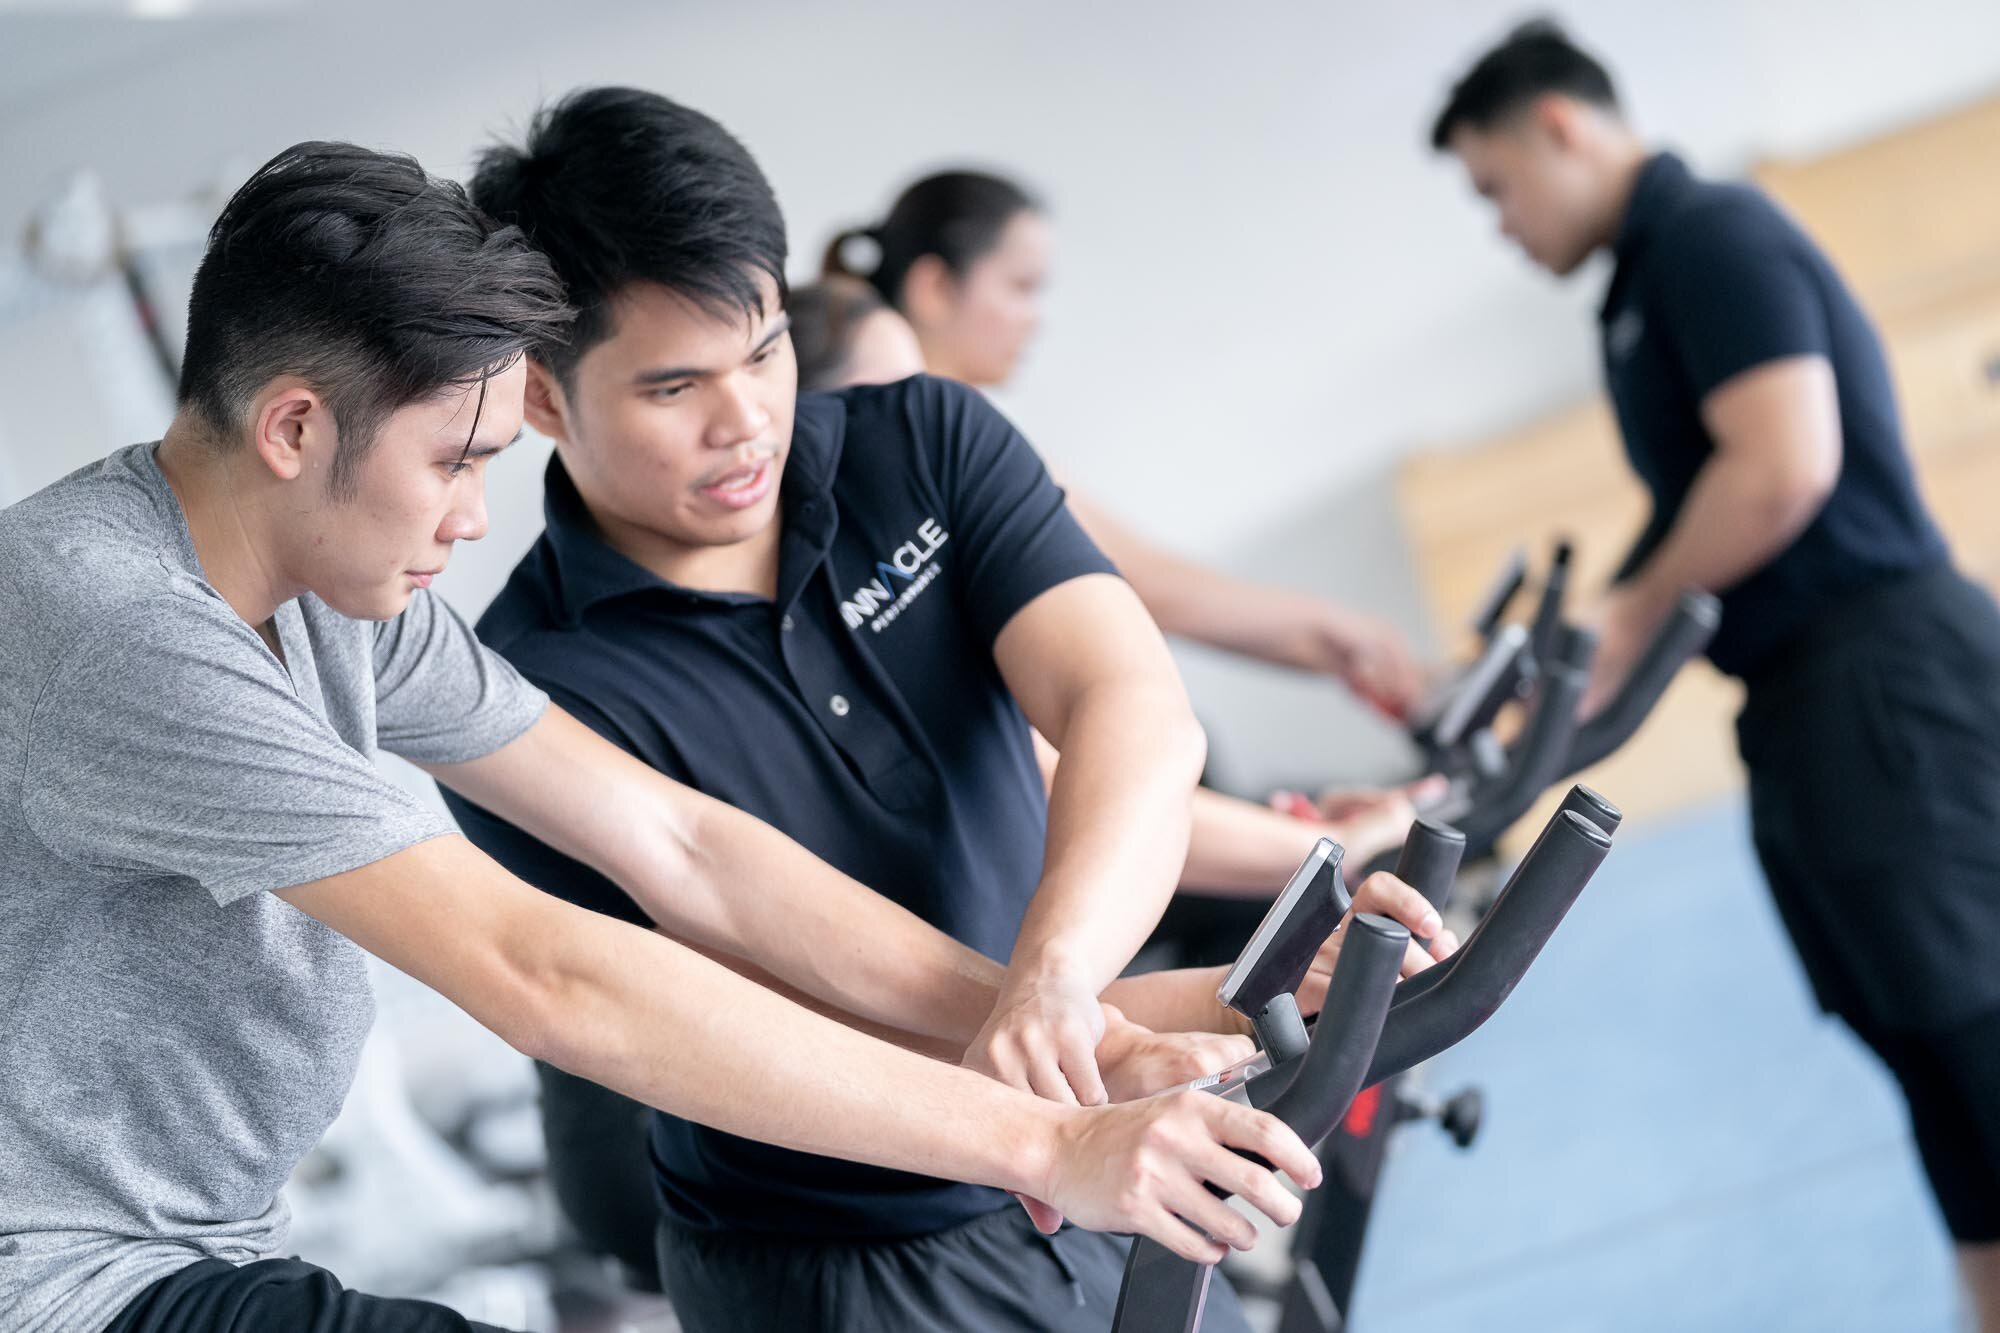 Facts About Personal Fitness Trainers